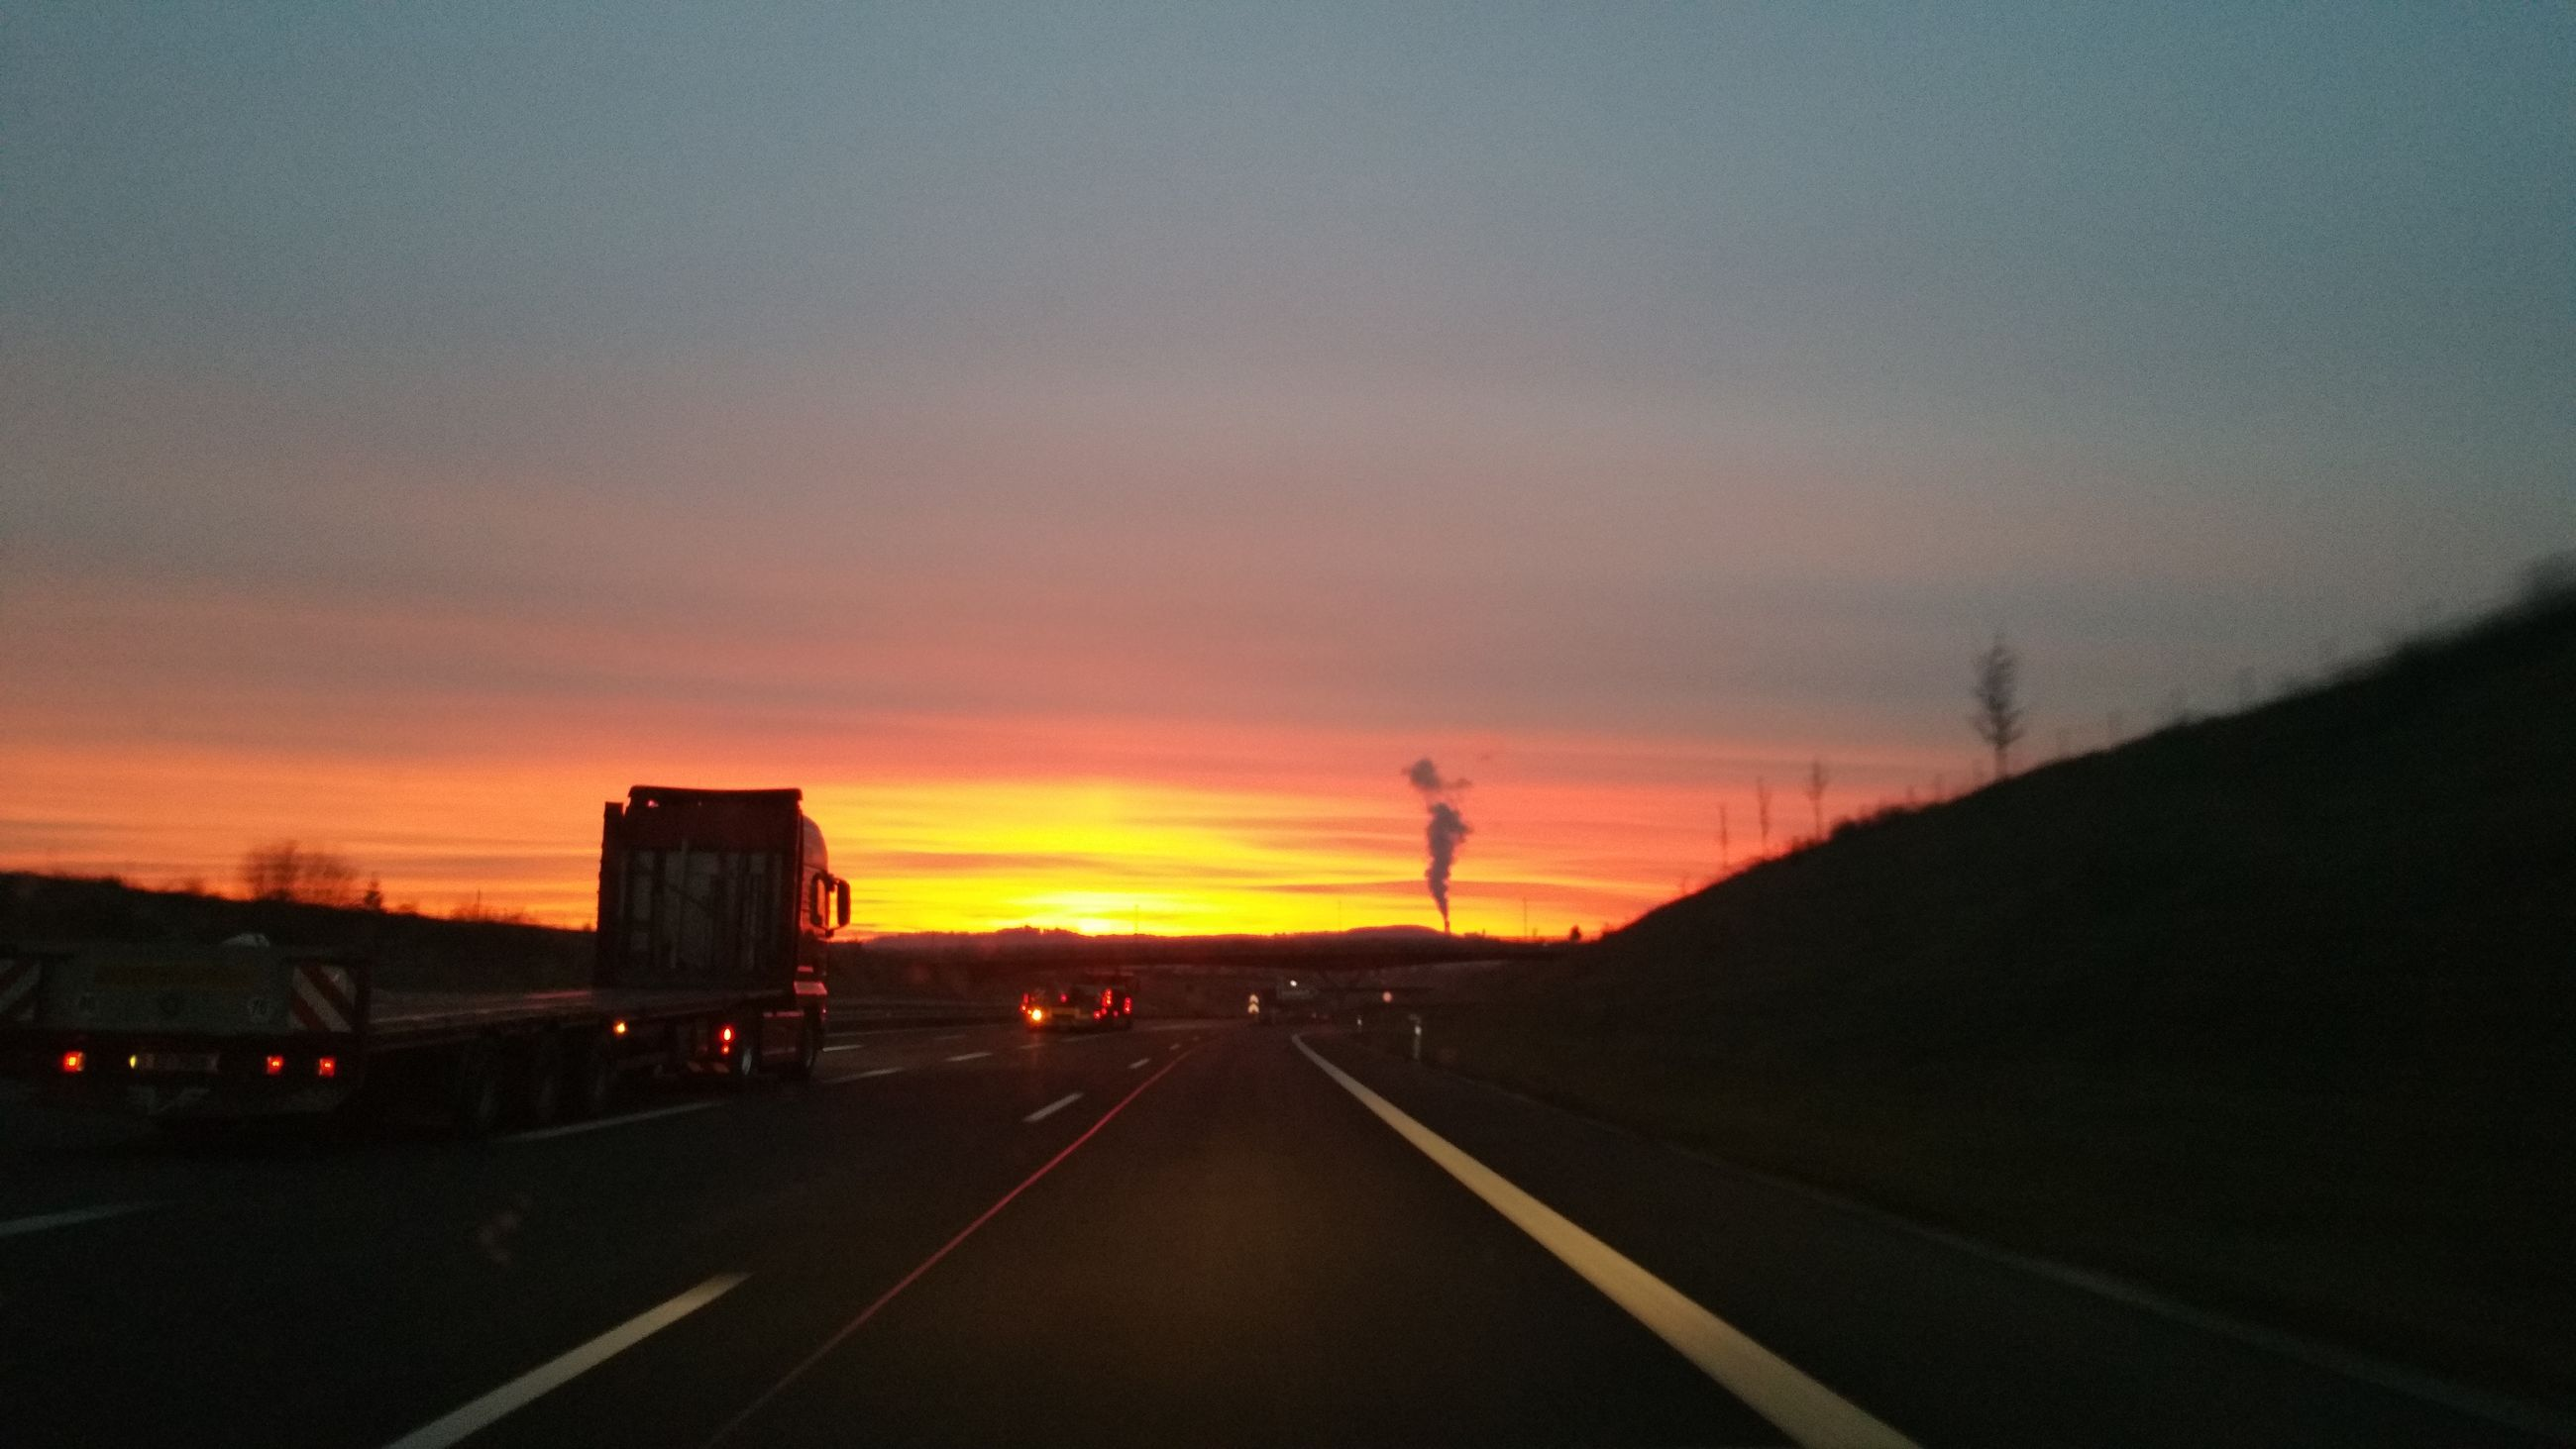 transportation, road, sunset, the way forward, car, highway, mode of transport, sky, land vehicle, outdoors, nature, one person, people, day